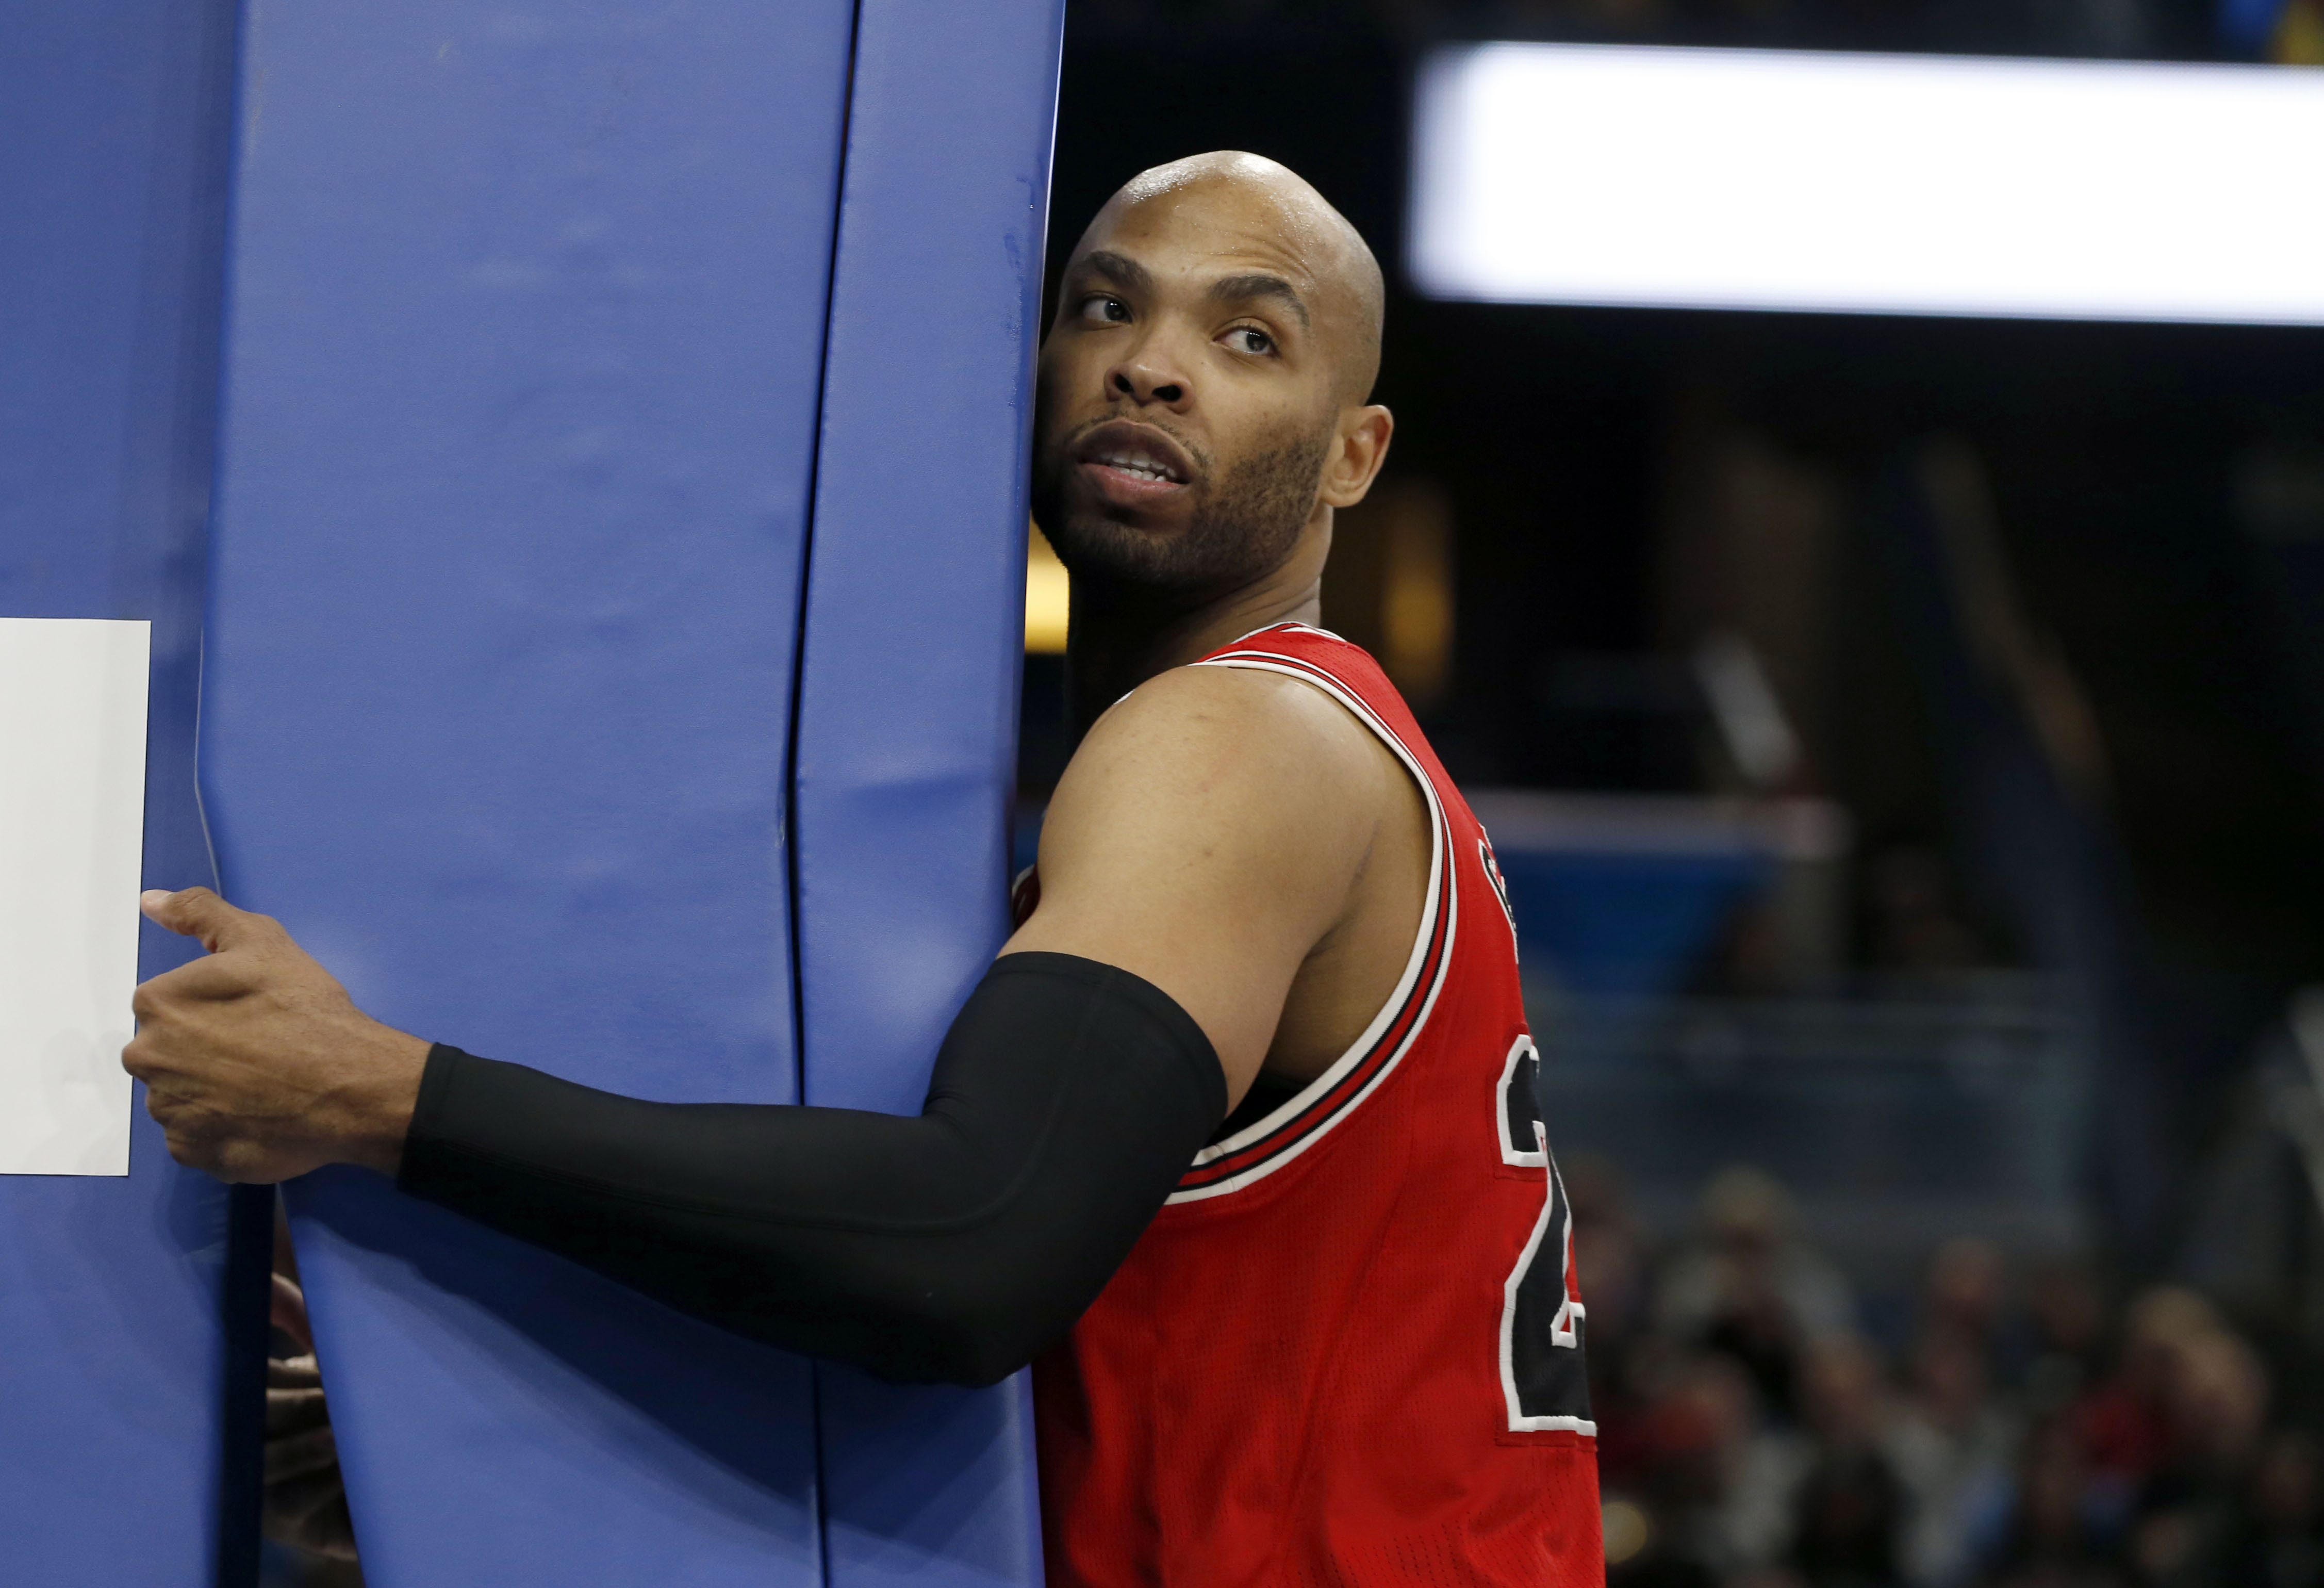 Jan 24, 2017; Orlando, FL, USA; Chicago Bulls forward Taj Gibson (22) holds onto the basket post after being fouled during the second half at Amway Center. The Bulls won 100-92. Mandatory Credit: Kim Klement-USA TODAY Sports